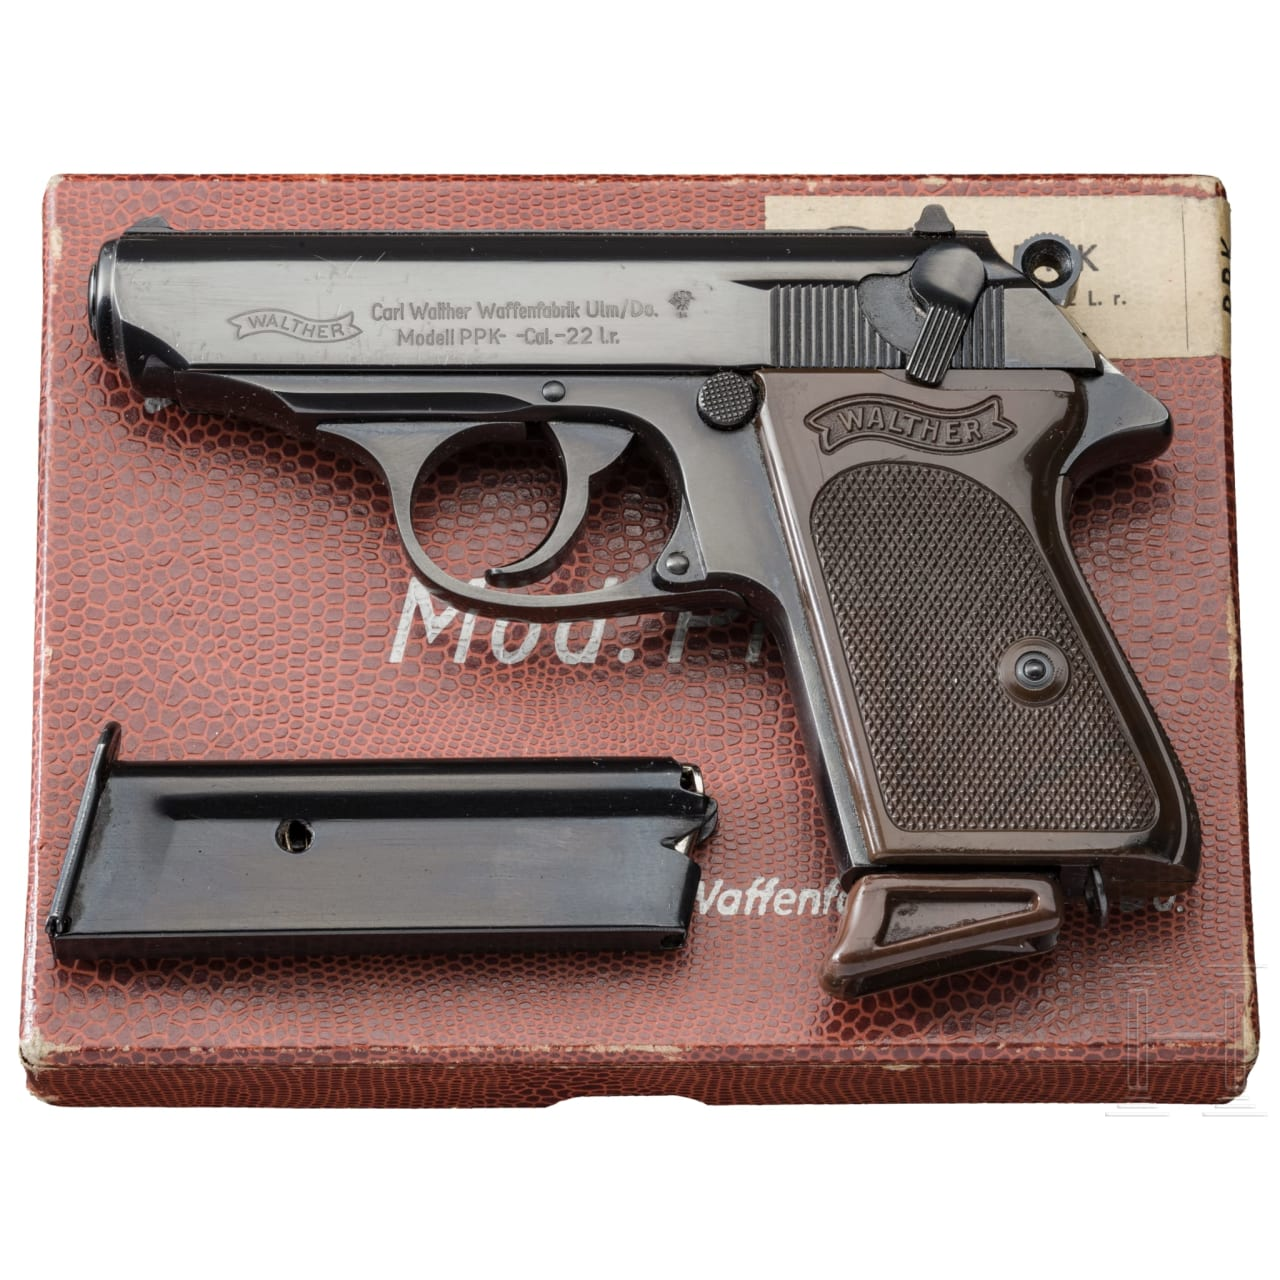 A Walther PPk Ulm with box